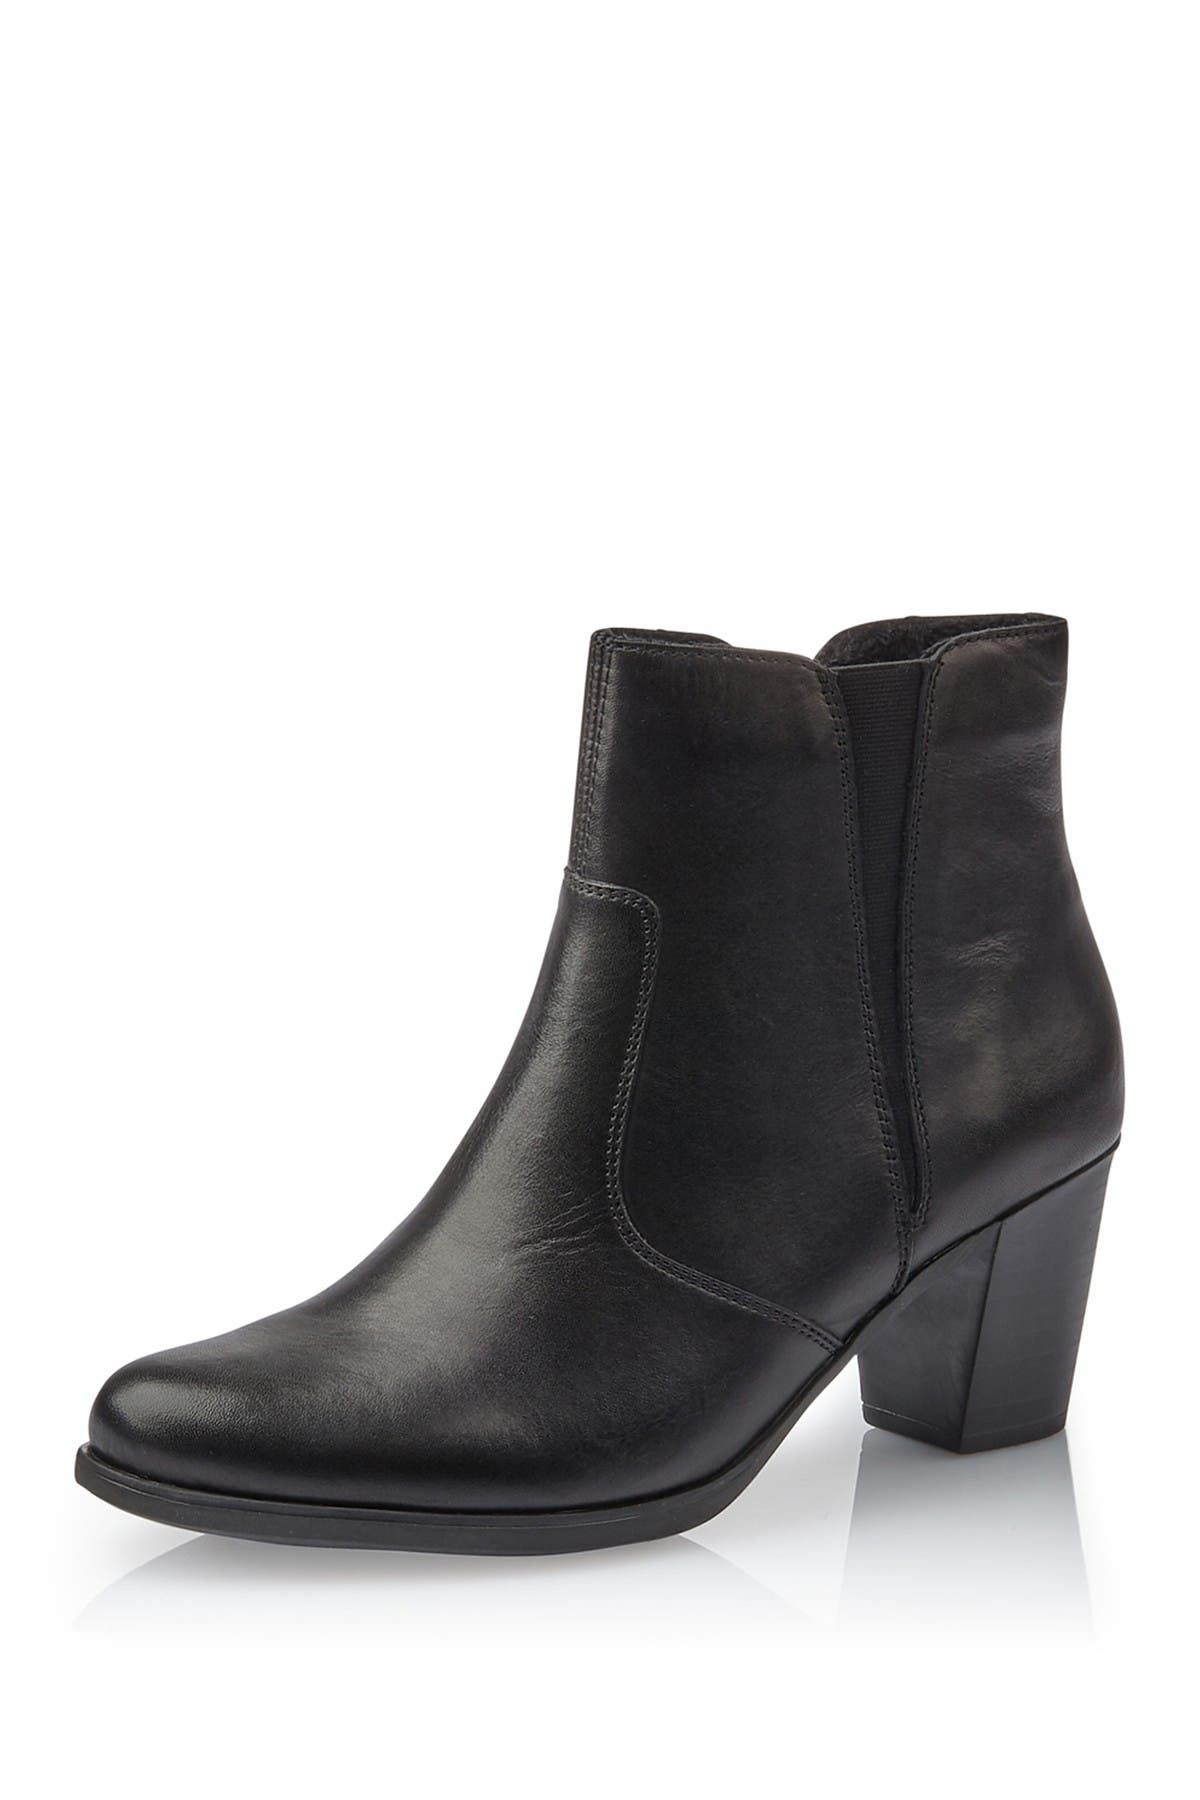 Image of Rieker Yvonne Leather Boot